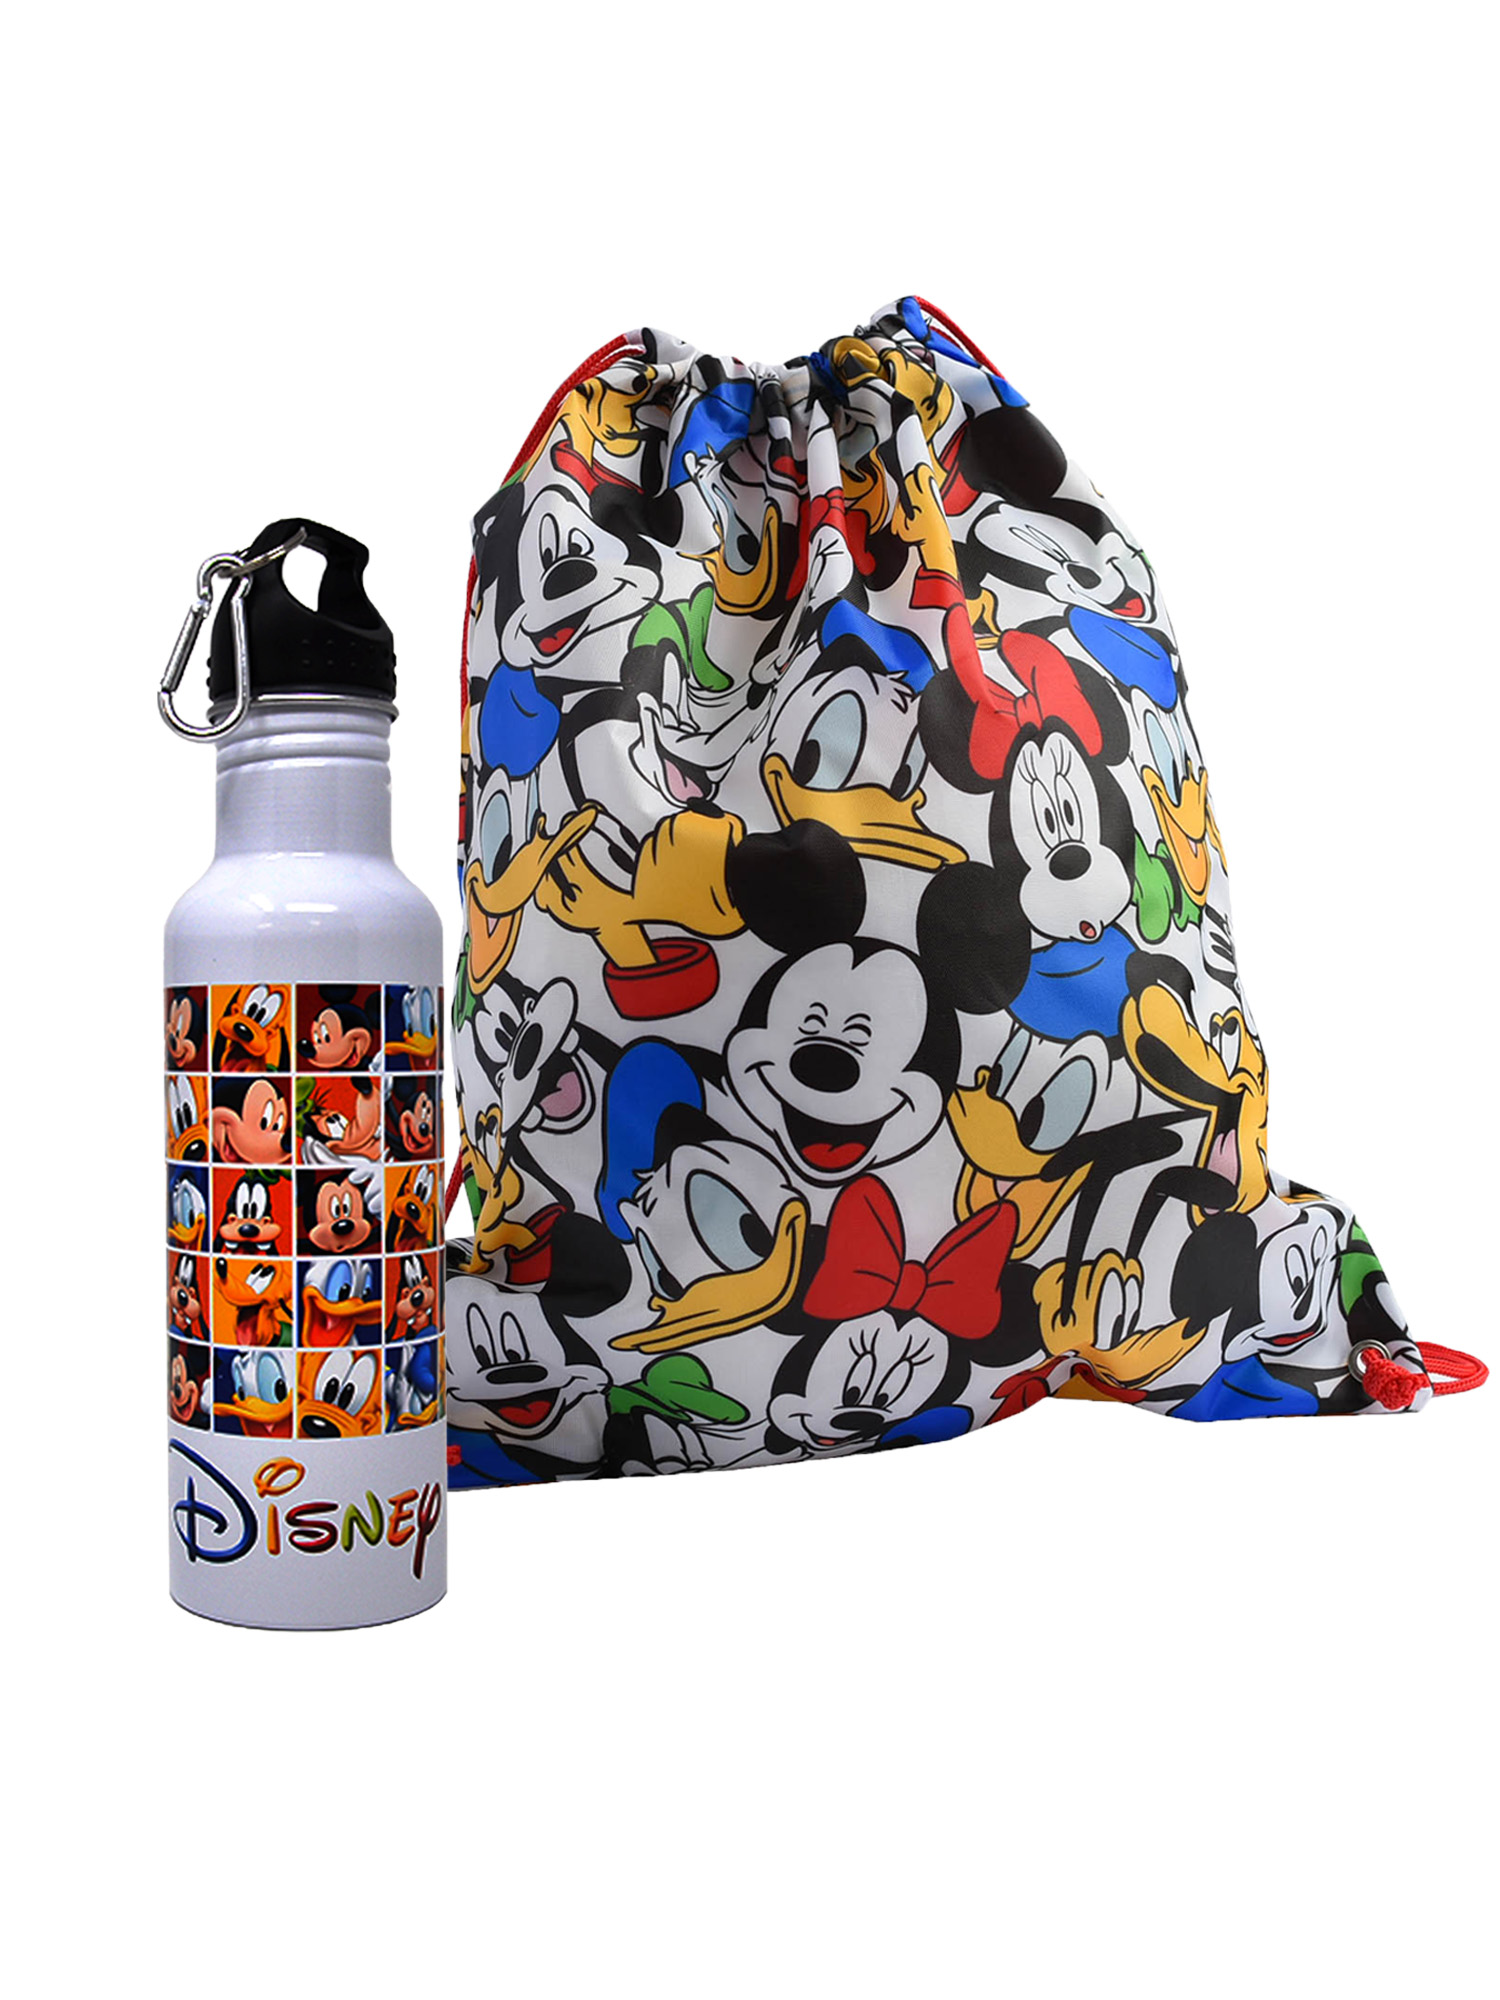 Cycling Bottle Travel Flask Stainless Steel Outdoor Yoga Camping Hiking Walt Disney Donald duck Water Bottle 18 Oz Donald duck Sport Bottle Steel Bottle for Water